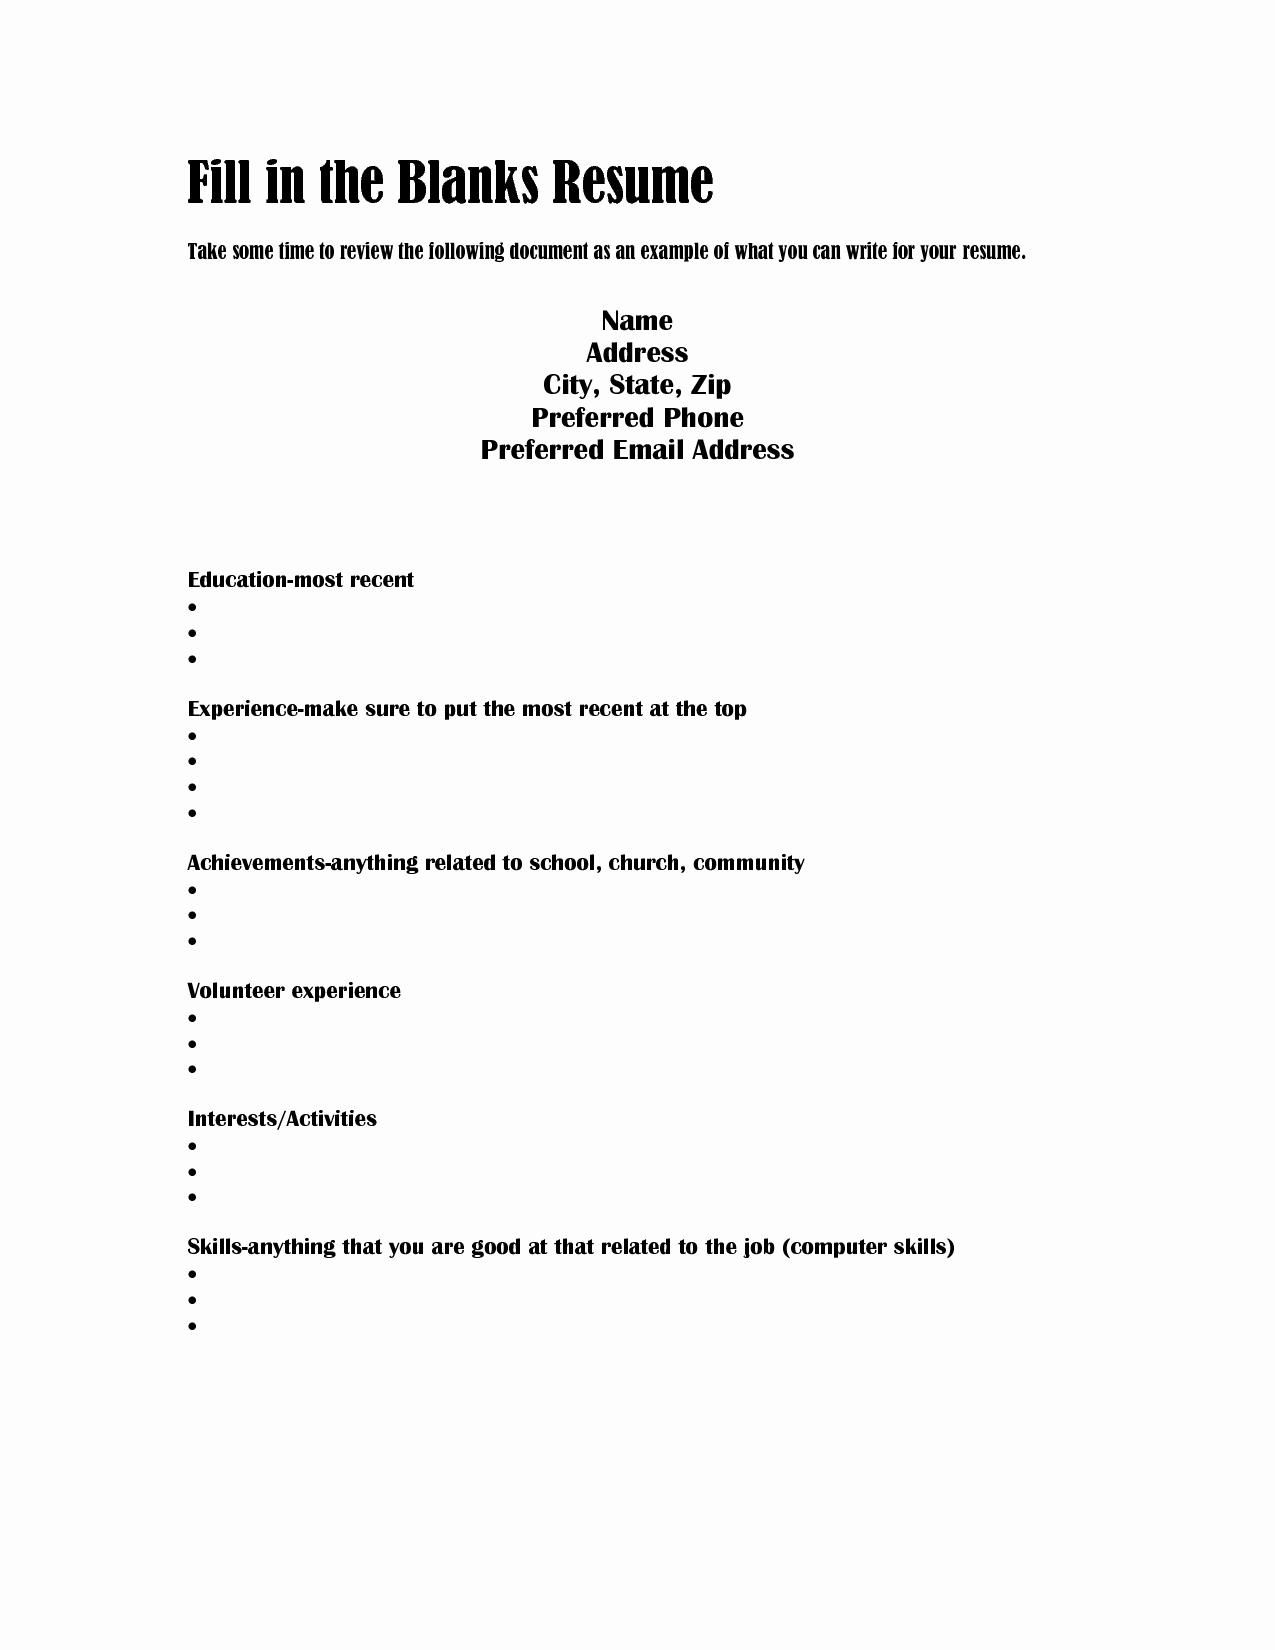 Resumes Fill In the Blanks Lovely Blank Resume Templates Mughals